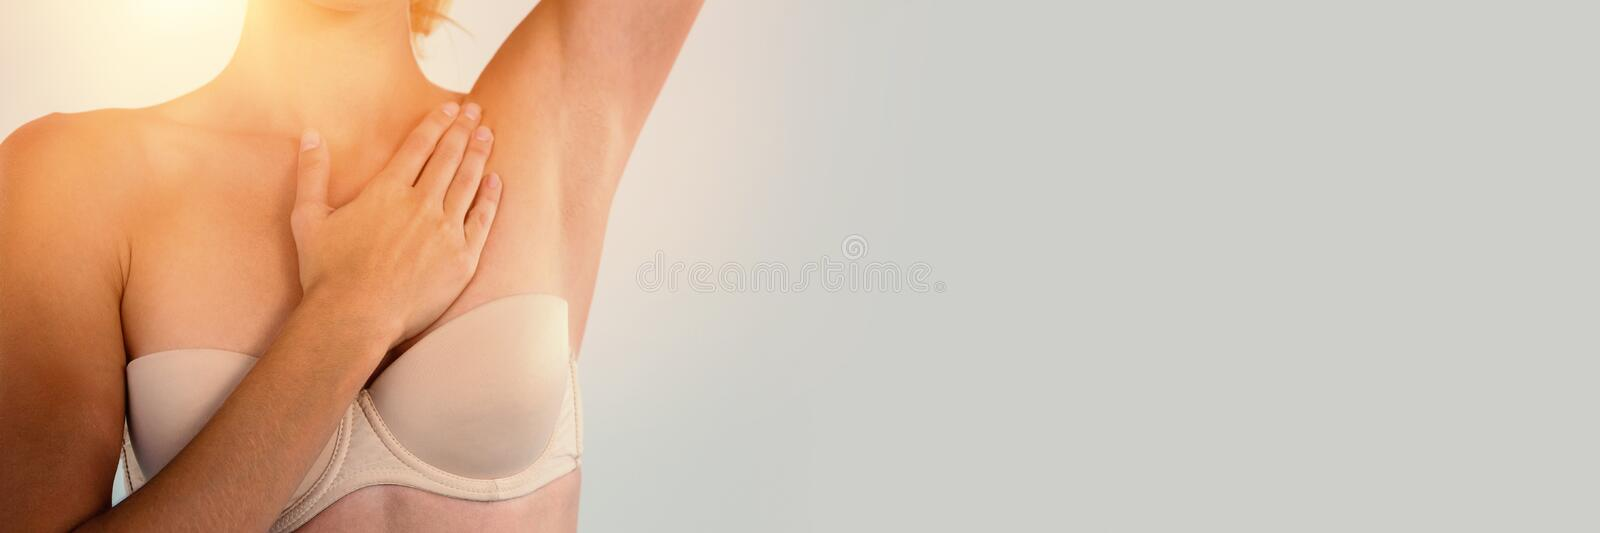 Mid section of woman in strapless bra checking breast royalty free stock photography